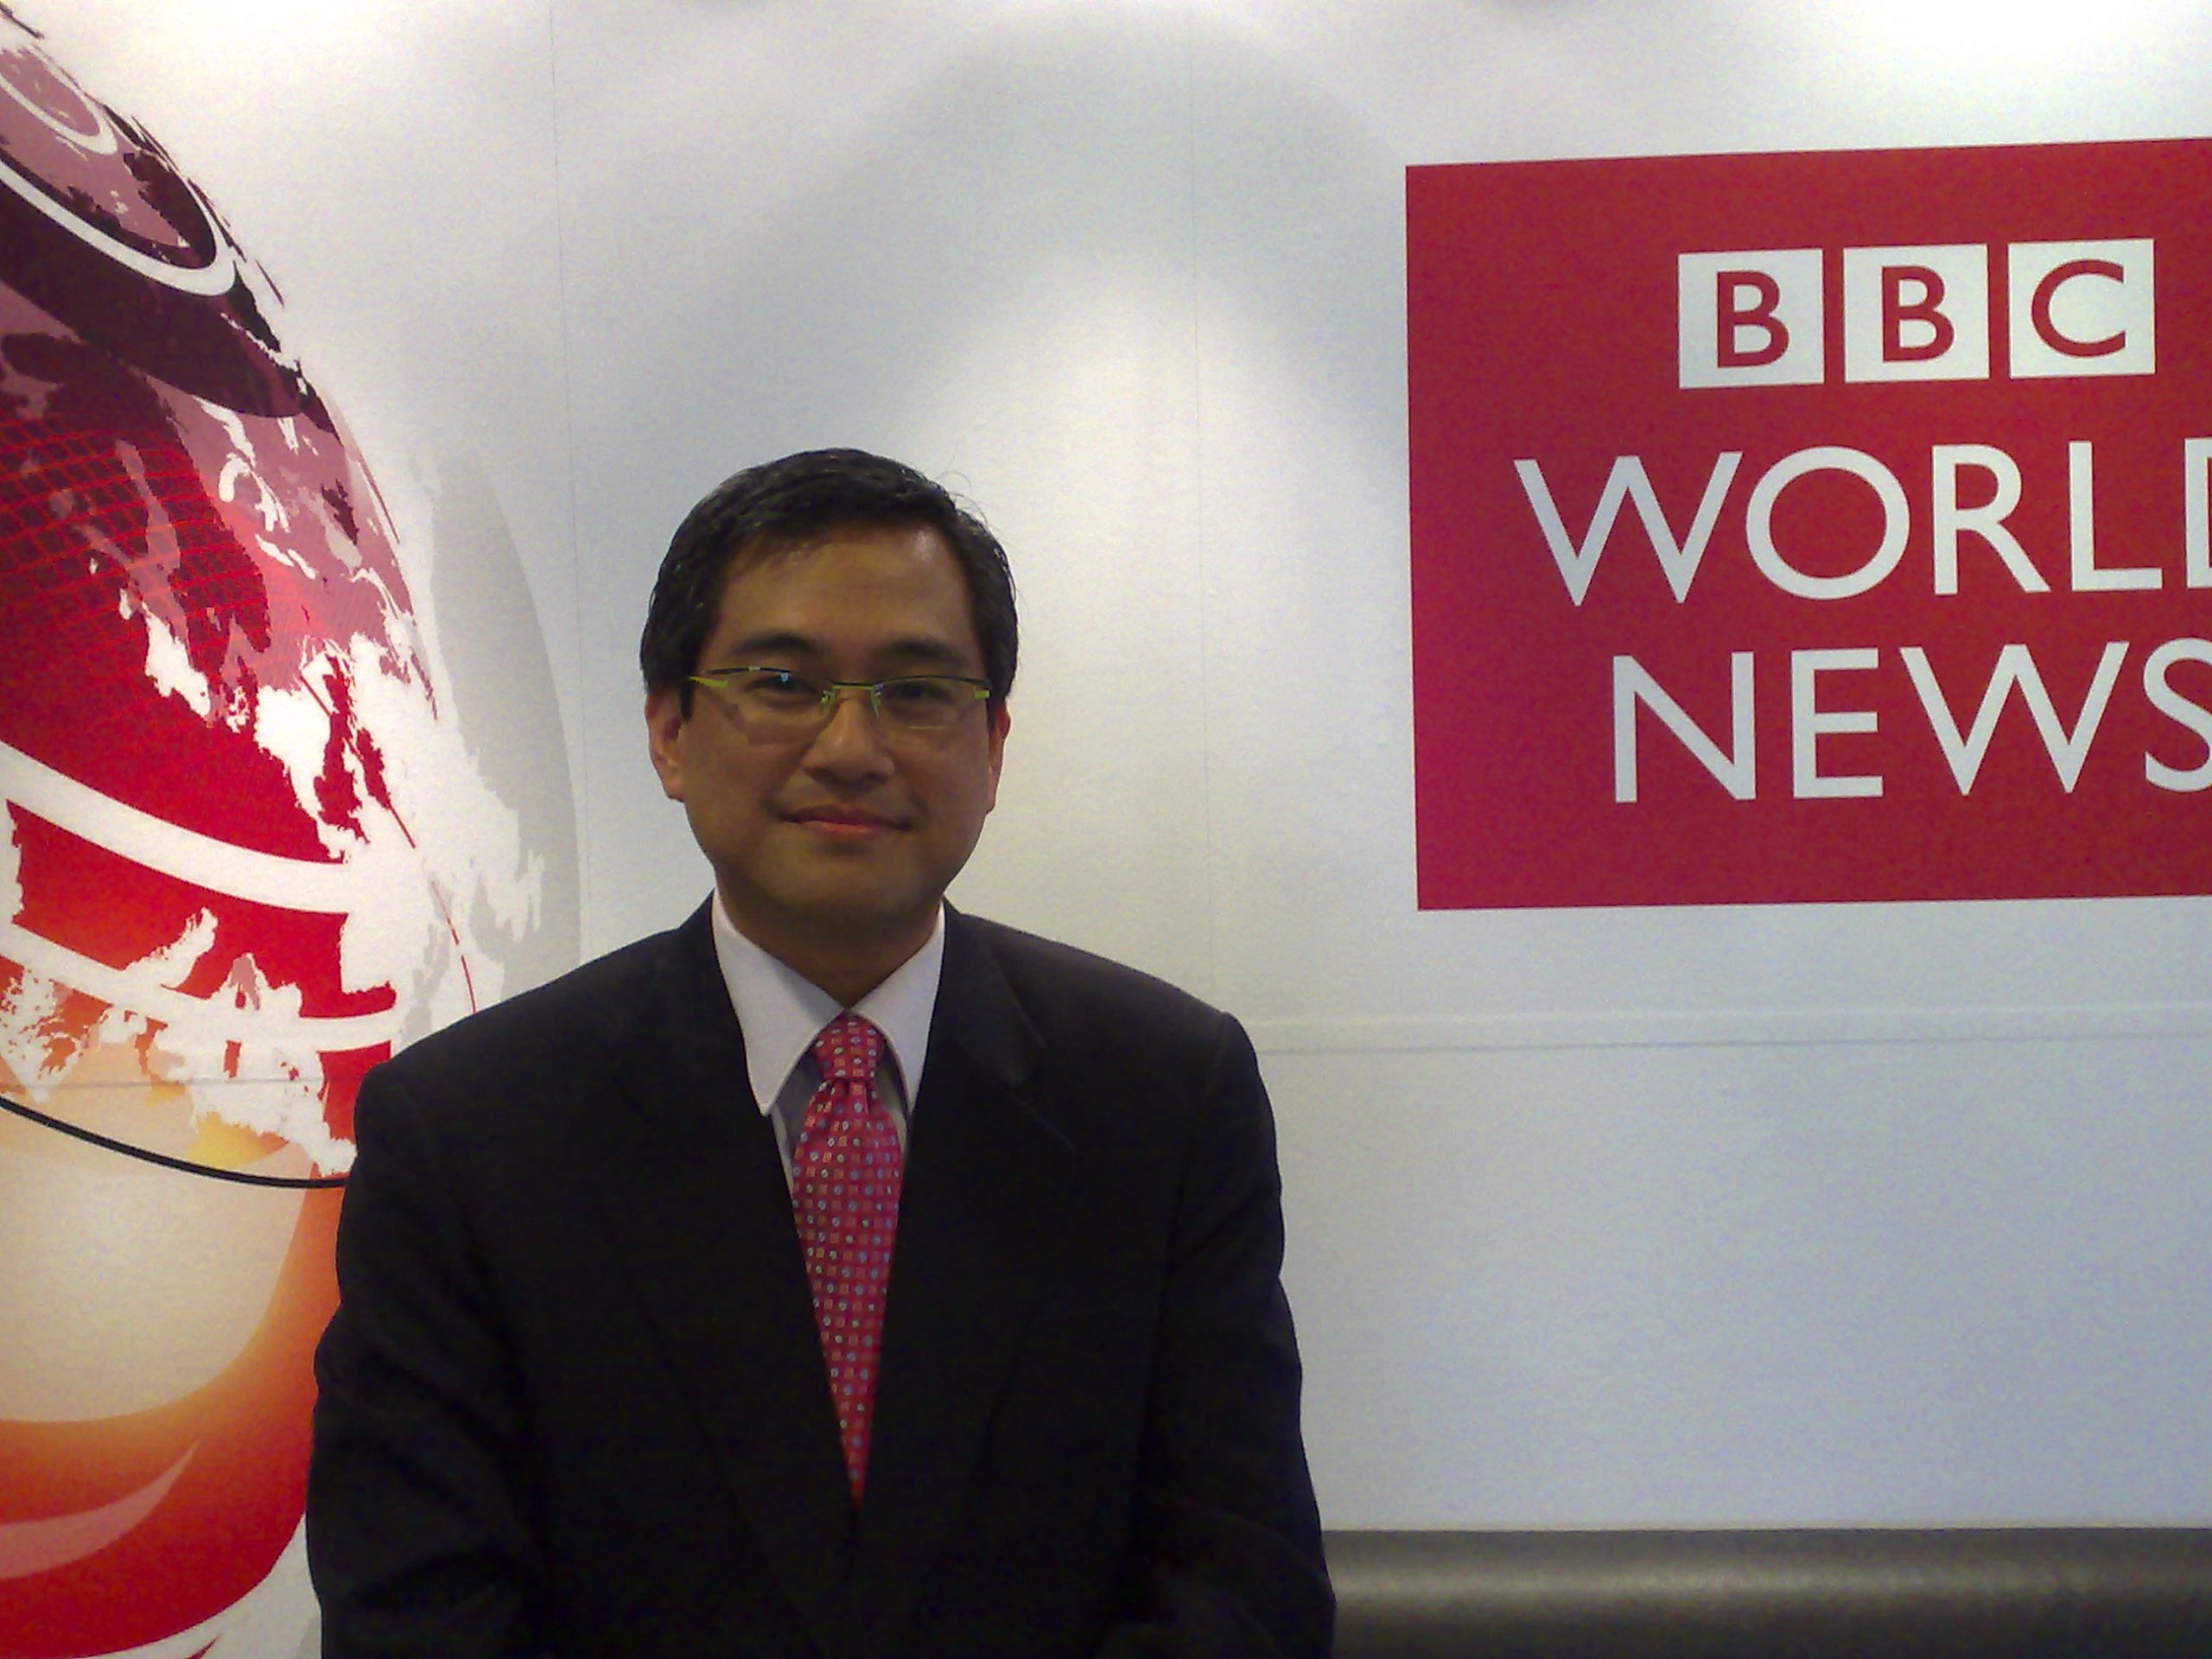 Photo of Rico Hizon at the BBC office